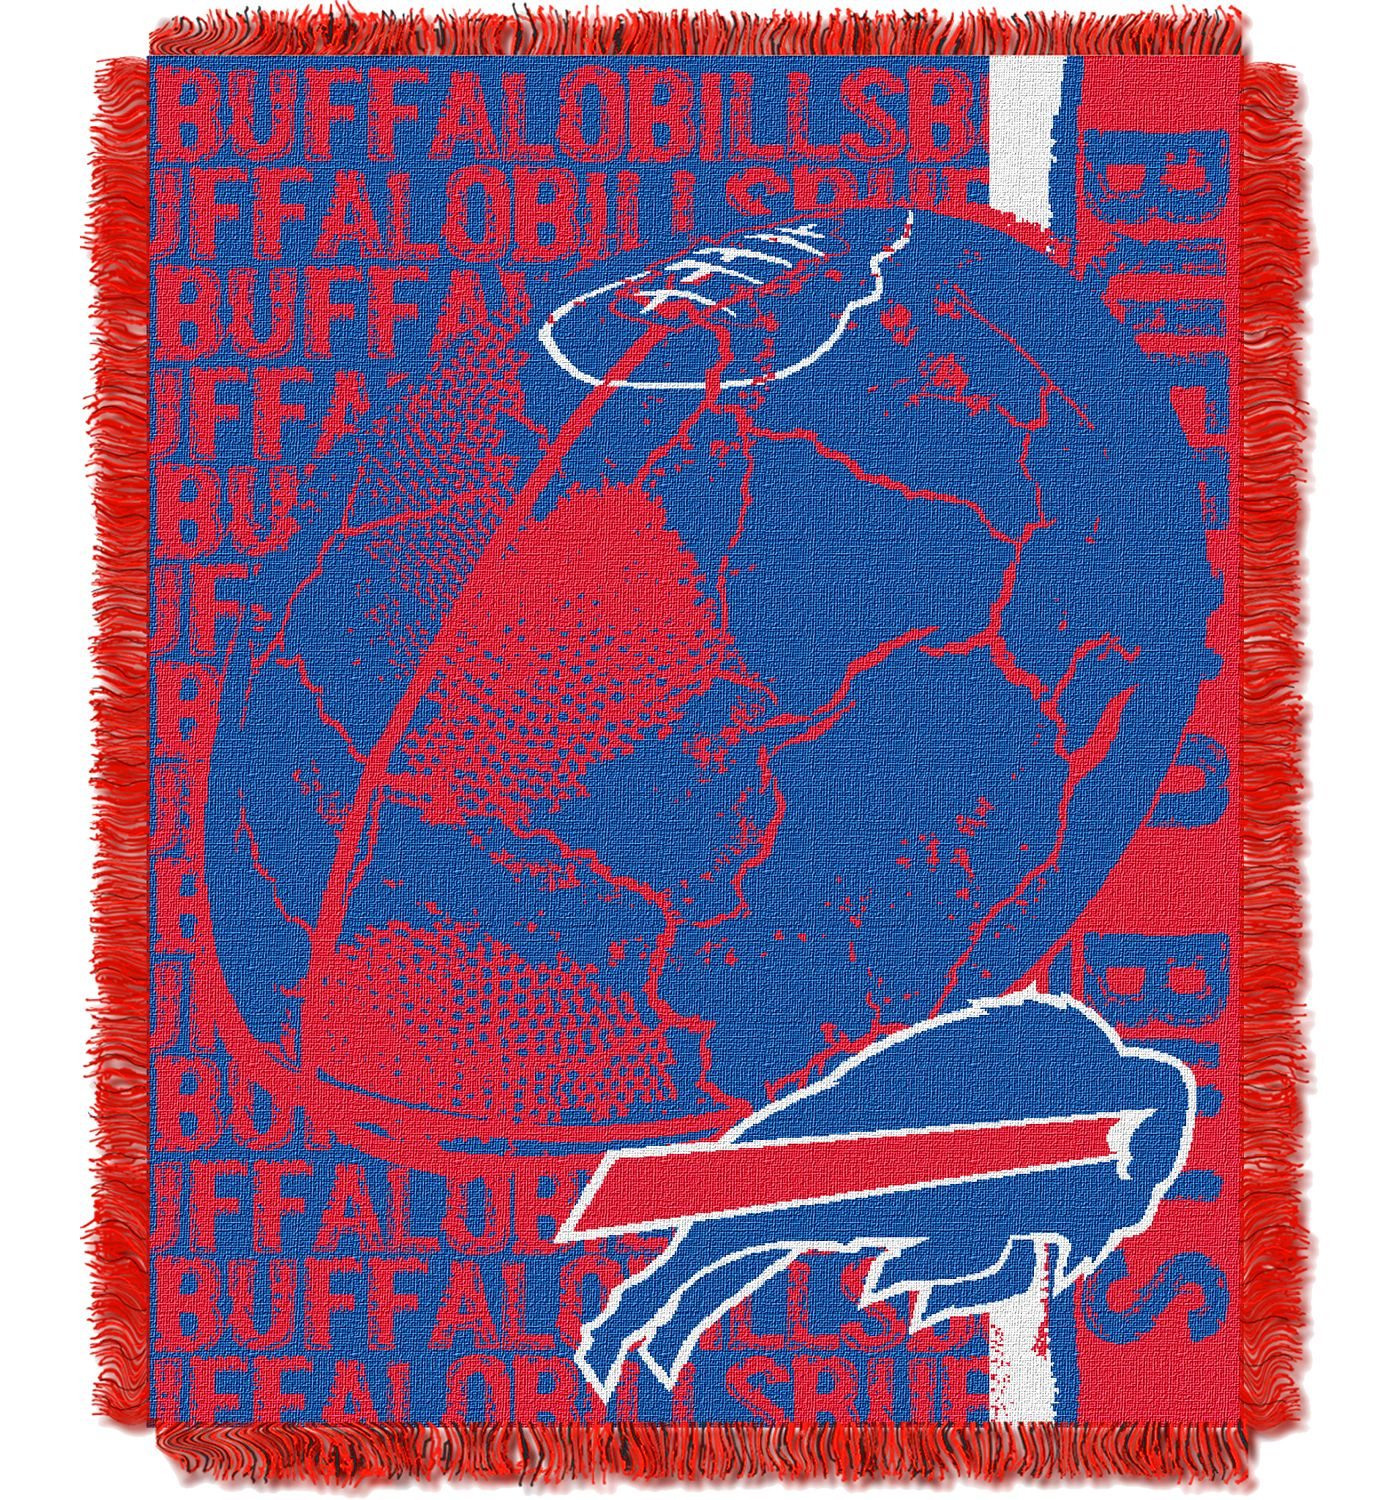 Northwest Buffalo Bills Double Play Blanket